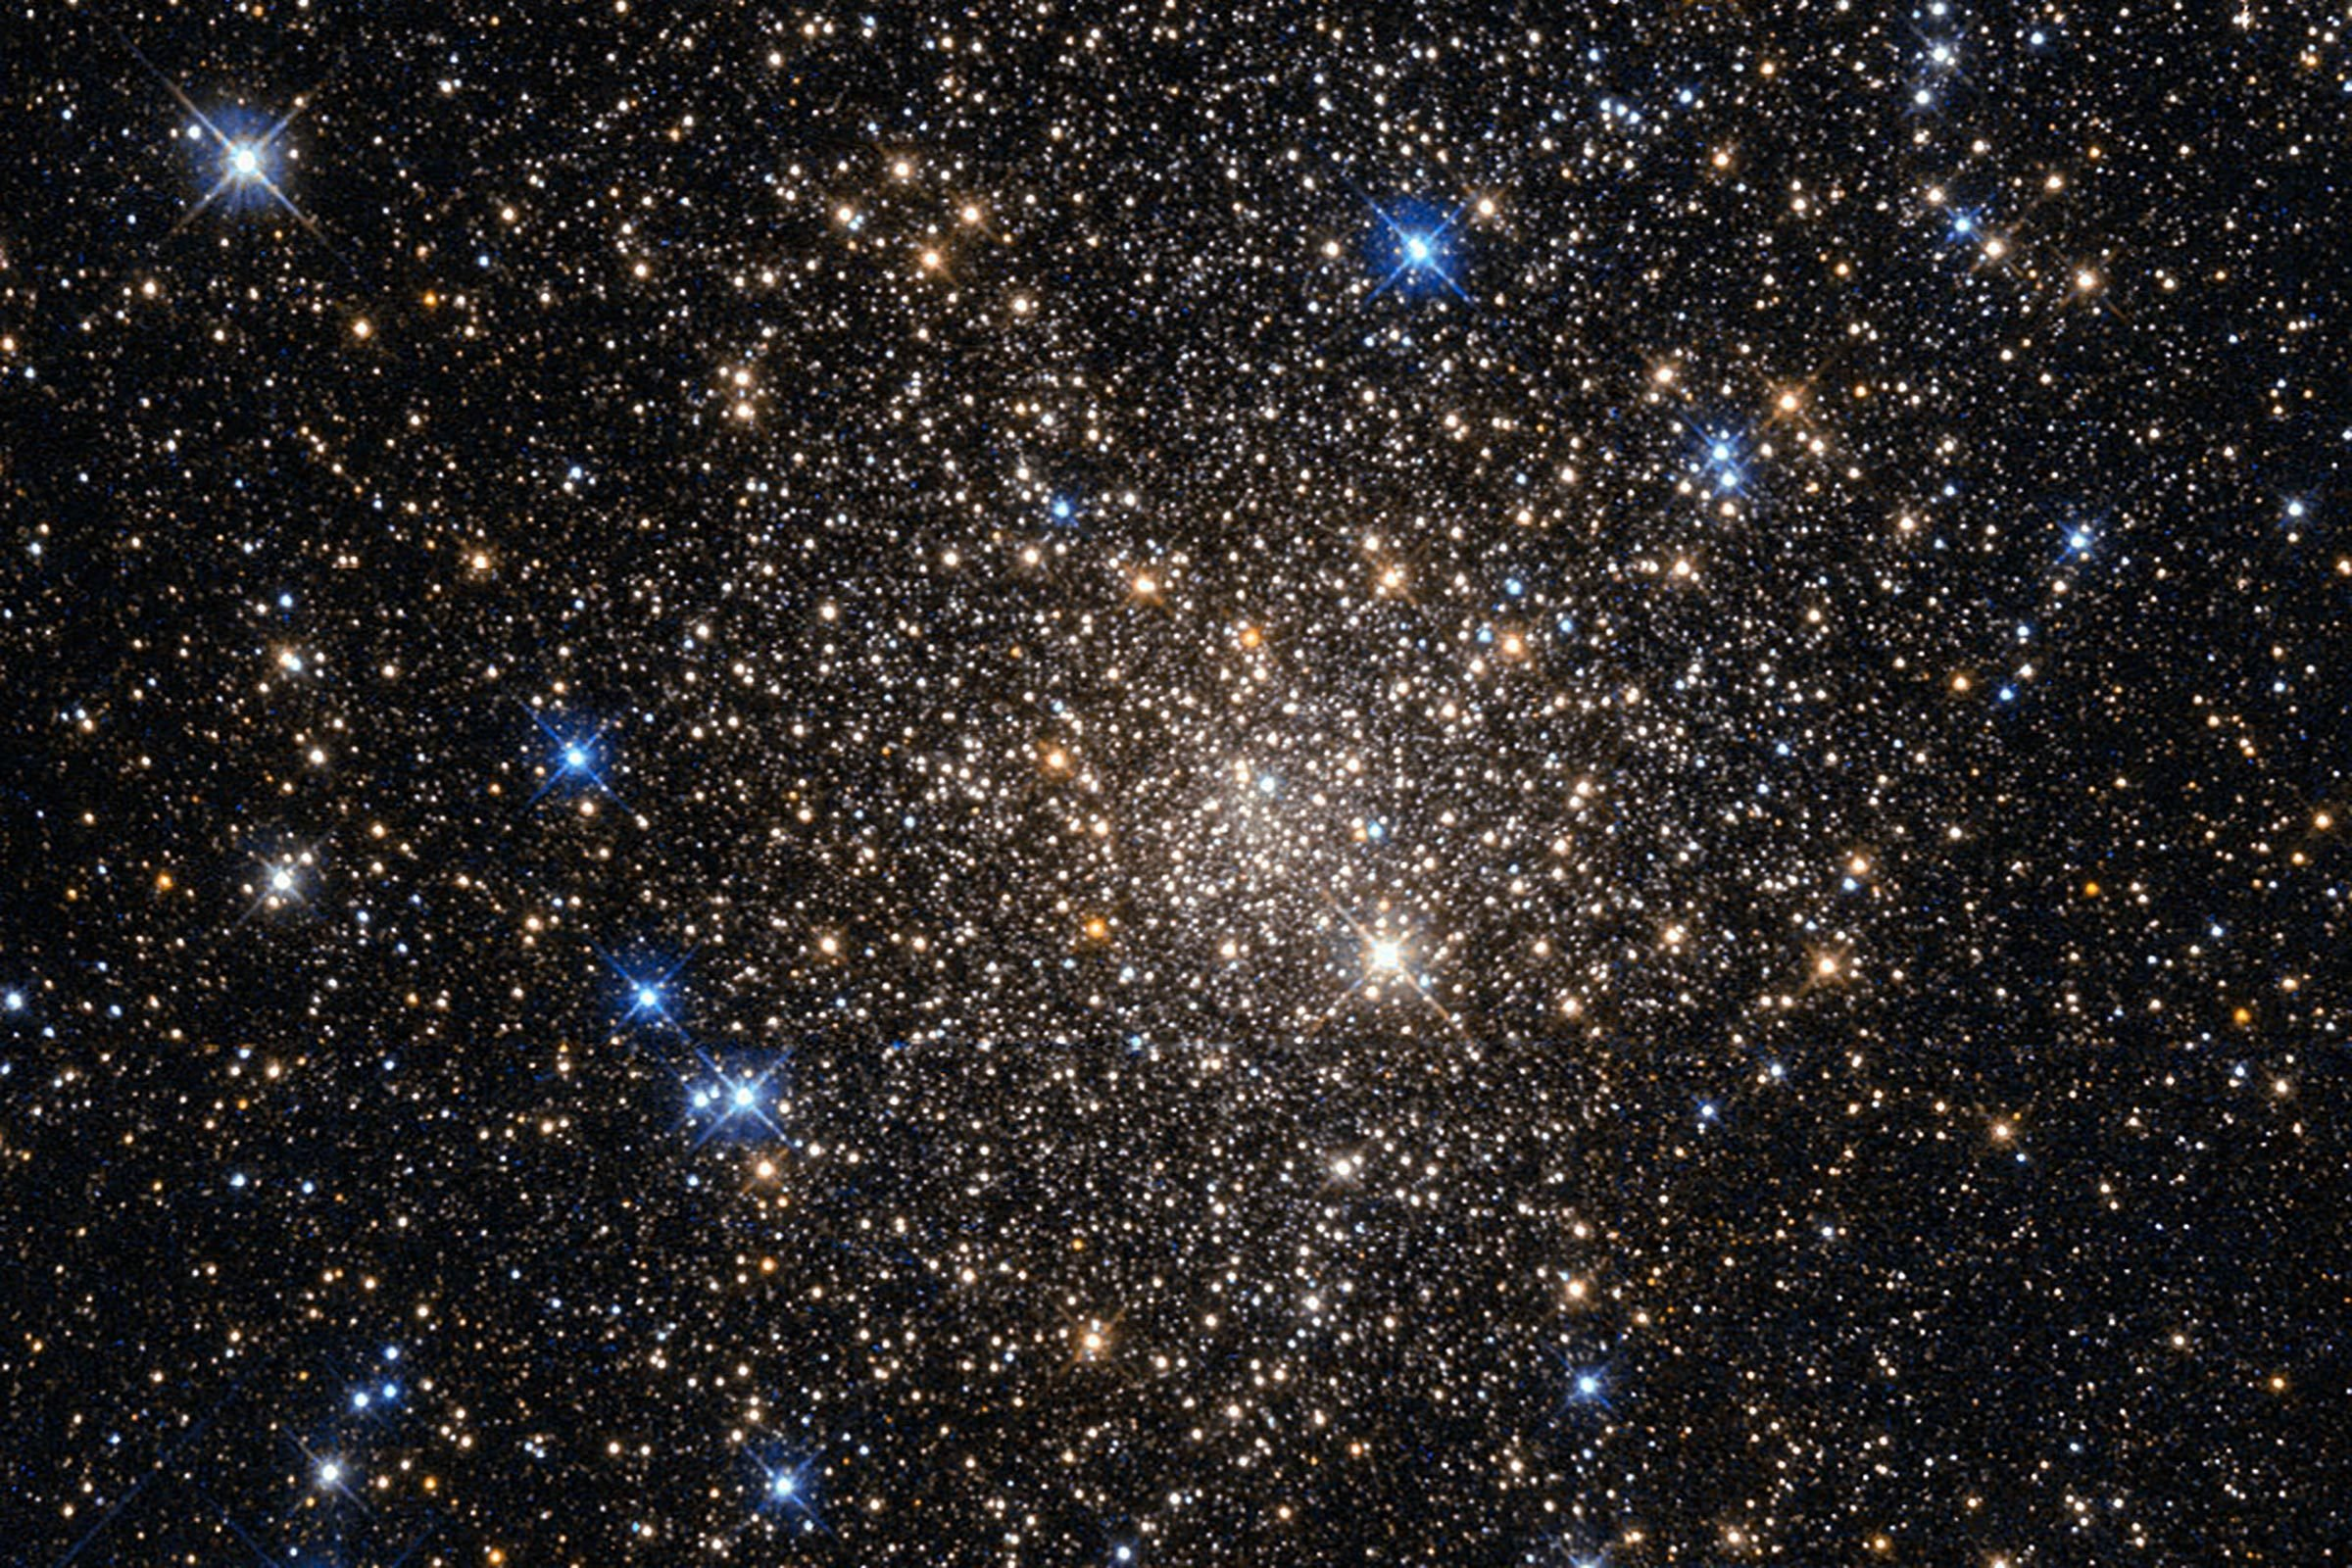 This image, taken with the Wide Field Planetary Camera 2 on board the NASA/ESA Hubble Space Telescope, shows the globular cluster Terzan 1. Lying around 20,000 light-years from us in the constellation of Scorpius (The Scorpion), it is one of about 150 globular clusters belonging to our galaxy, the Milky Way. Typical globular clusters are collections of around a hundred thousand stars, held together by their mutual gravitational attraction in a spherical shape a few hundred light-years across. It is thought that every galaxy has a population of globular clusters. Some, like the Milky Way, have a few hundred, while giant elliptical galaxies can have several thousand. They contain some of the oldest stars in a galaxy, hence the reddish colors of the stars in this image — the bright blue ones are foreground stars, not part of the cluster. The ages of the stars in the globular cluster tell us that they were formed during the early stages of galaxy formation! Studying them can also help us to understand how galaxies formed. Terzan 1, like many globular clusters, is a source of X-rays. It is likely that these X-rays come from binary star systems that contain a dense neutron star and a normal star. The neutron star drags material from the companion star, causing a burst of X-ray emission. The system then enters a quiescent phase in which the neutron star cools, giving off X-ray emission with different characteristics, before enough material from the companion builds up to trigger another outburst.